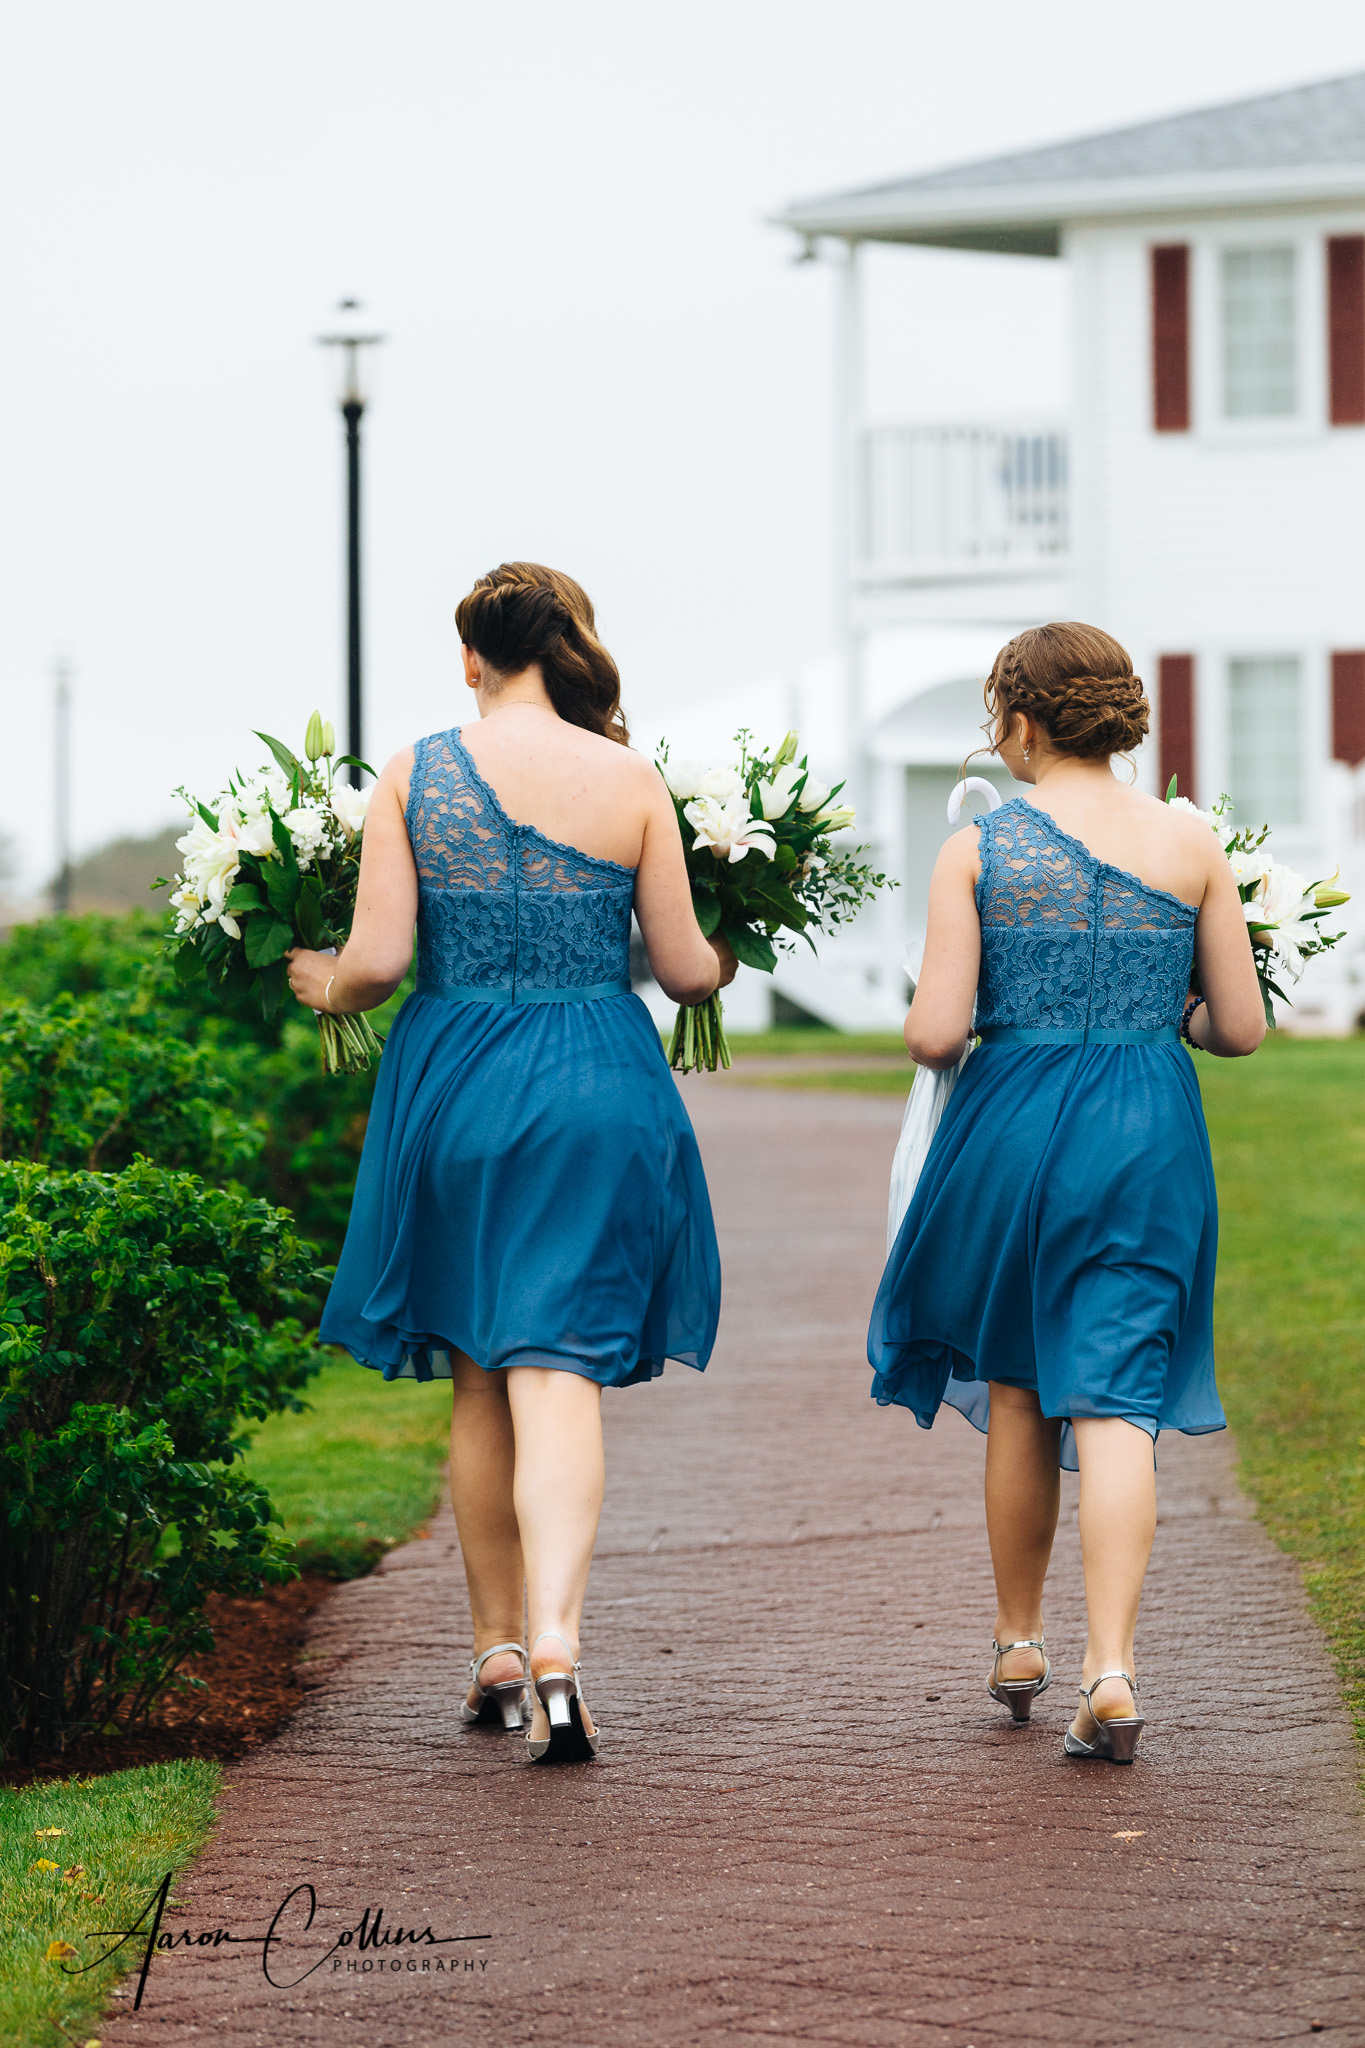 Bridesmaids walking side by side in blue on a red brick walkway